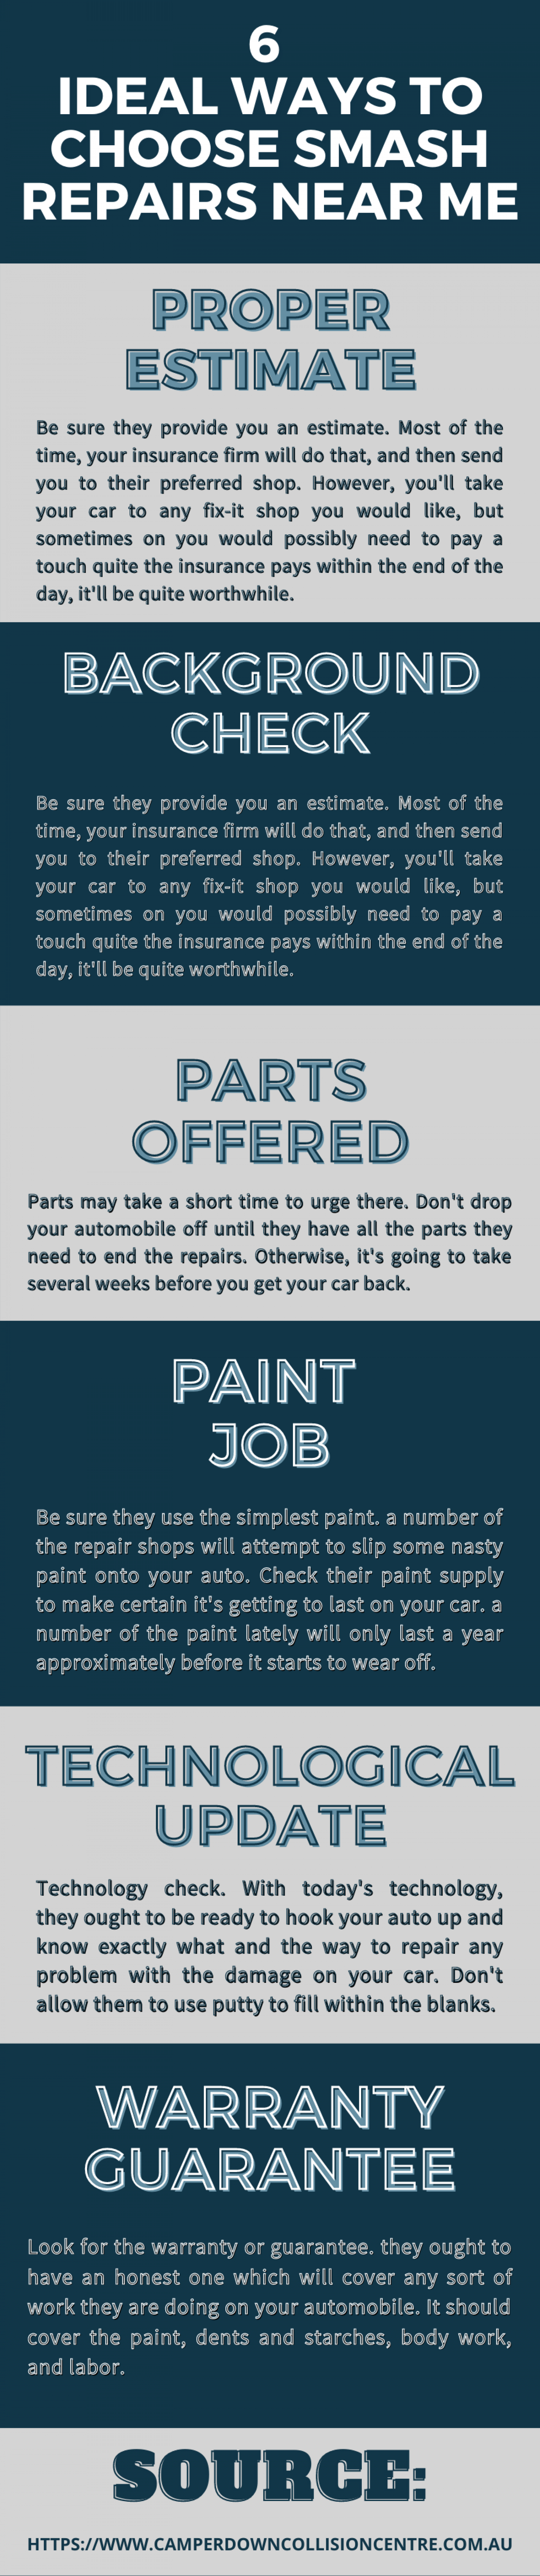 6 Ideal Ways to Choose Smash Repairs Near Me Infographic